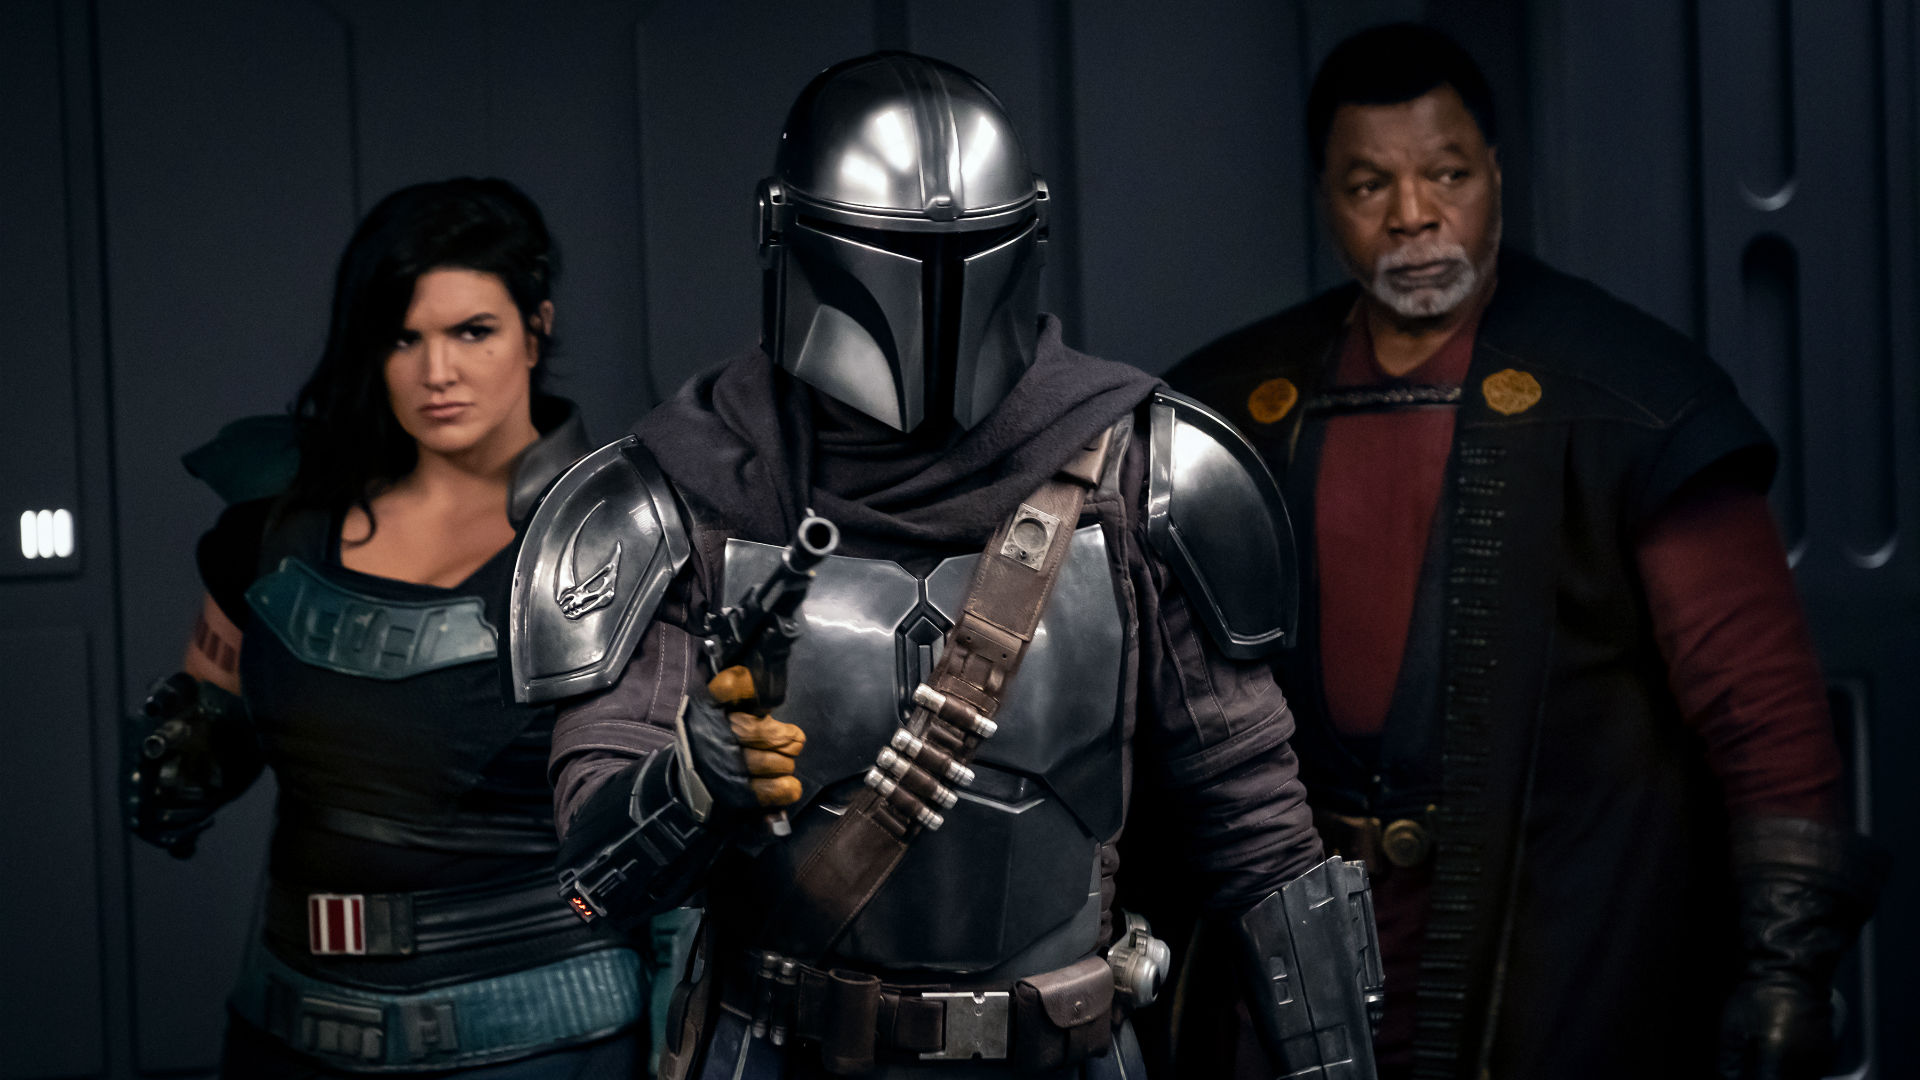 The Mandalorian: Disney+ Debuts All-New Season 2 Character Art